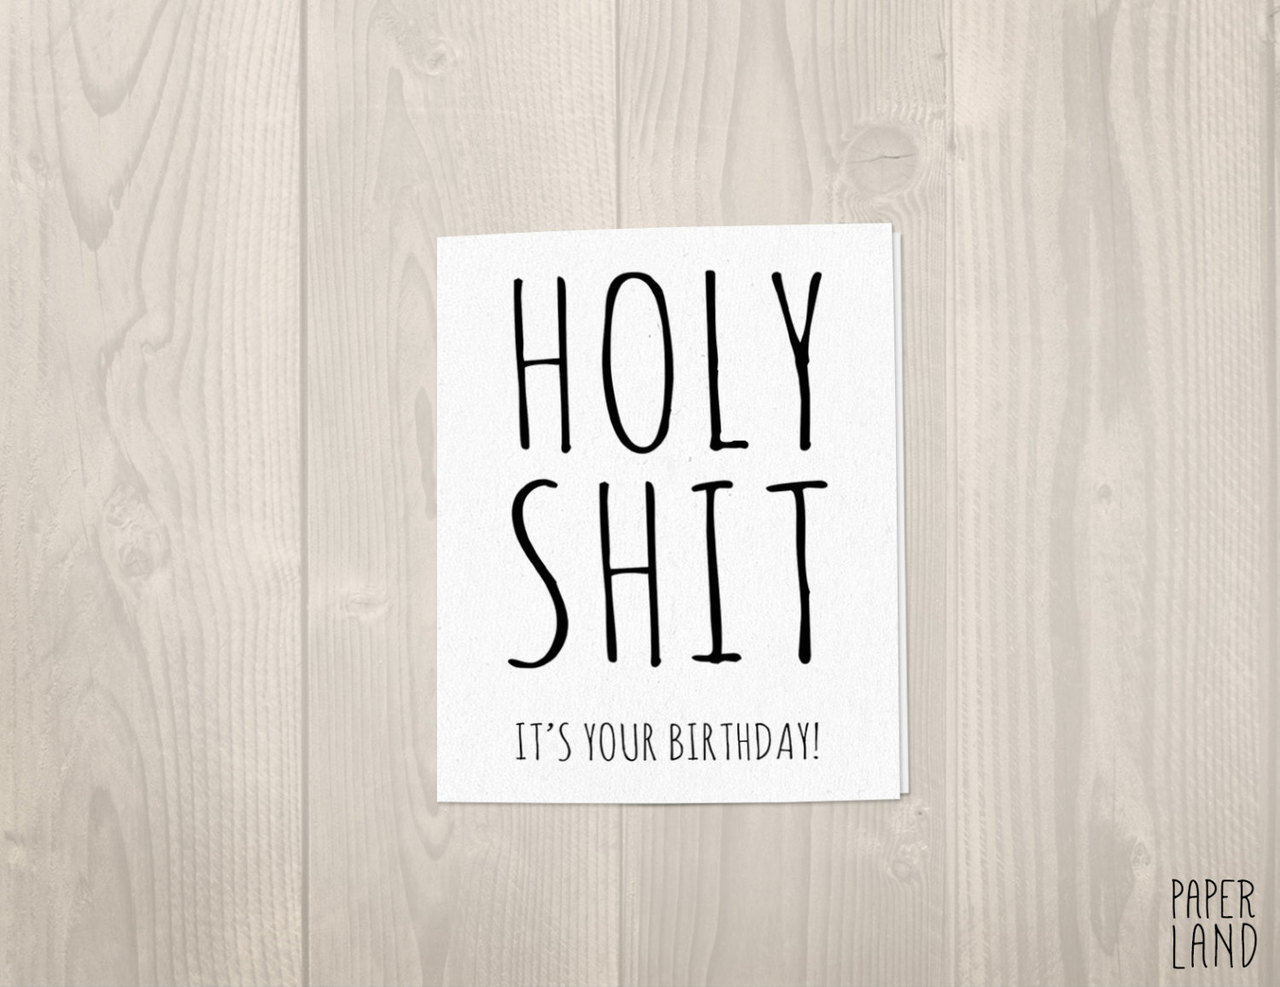 Holy It S Your Birthday By Paperlandco On We Heart Cute Presents For Best Friend Card Ideas Funny